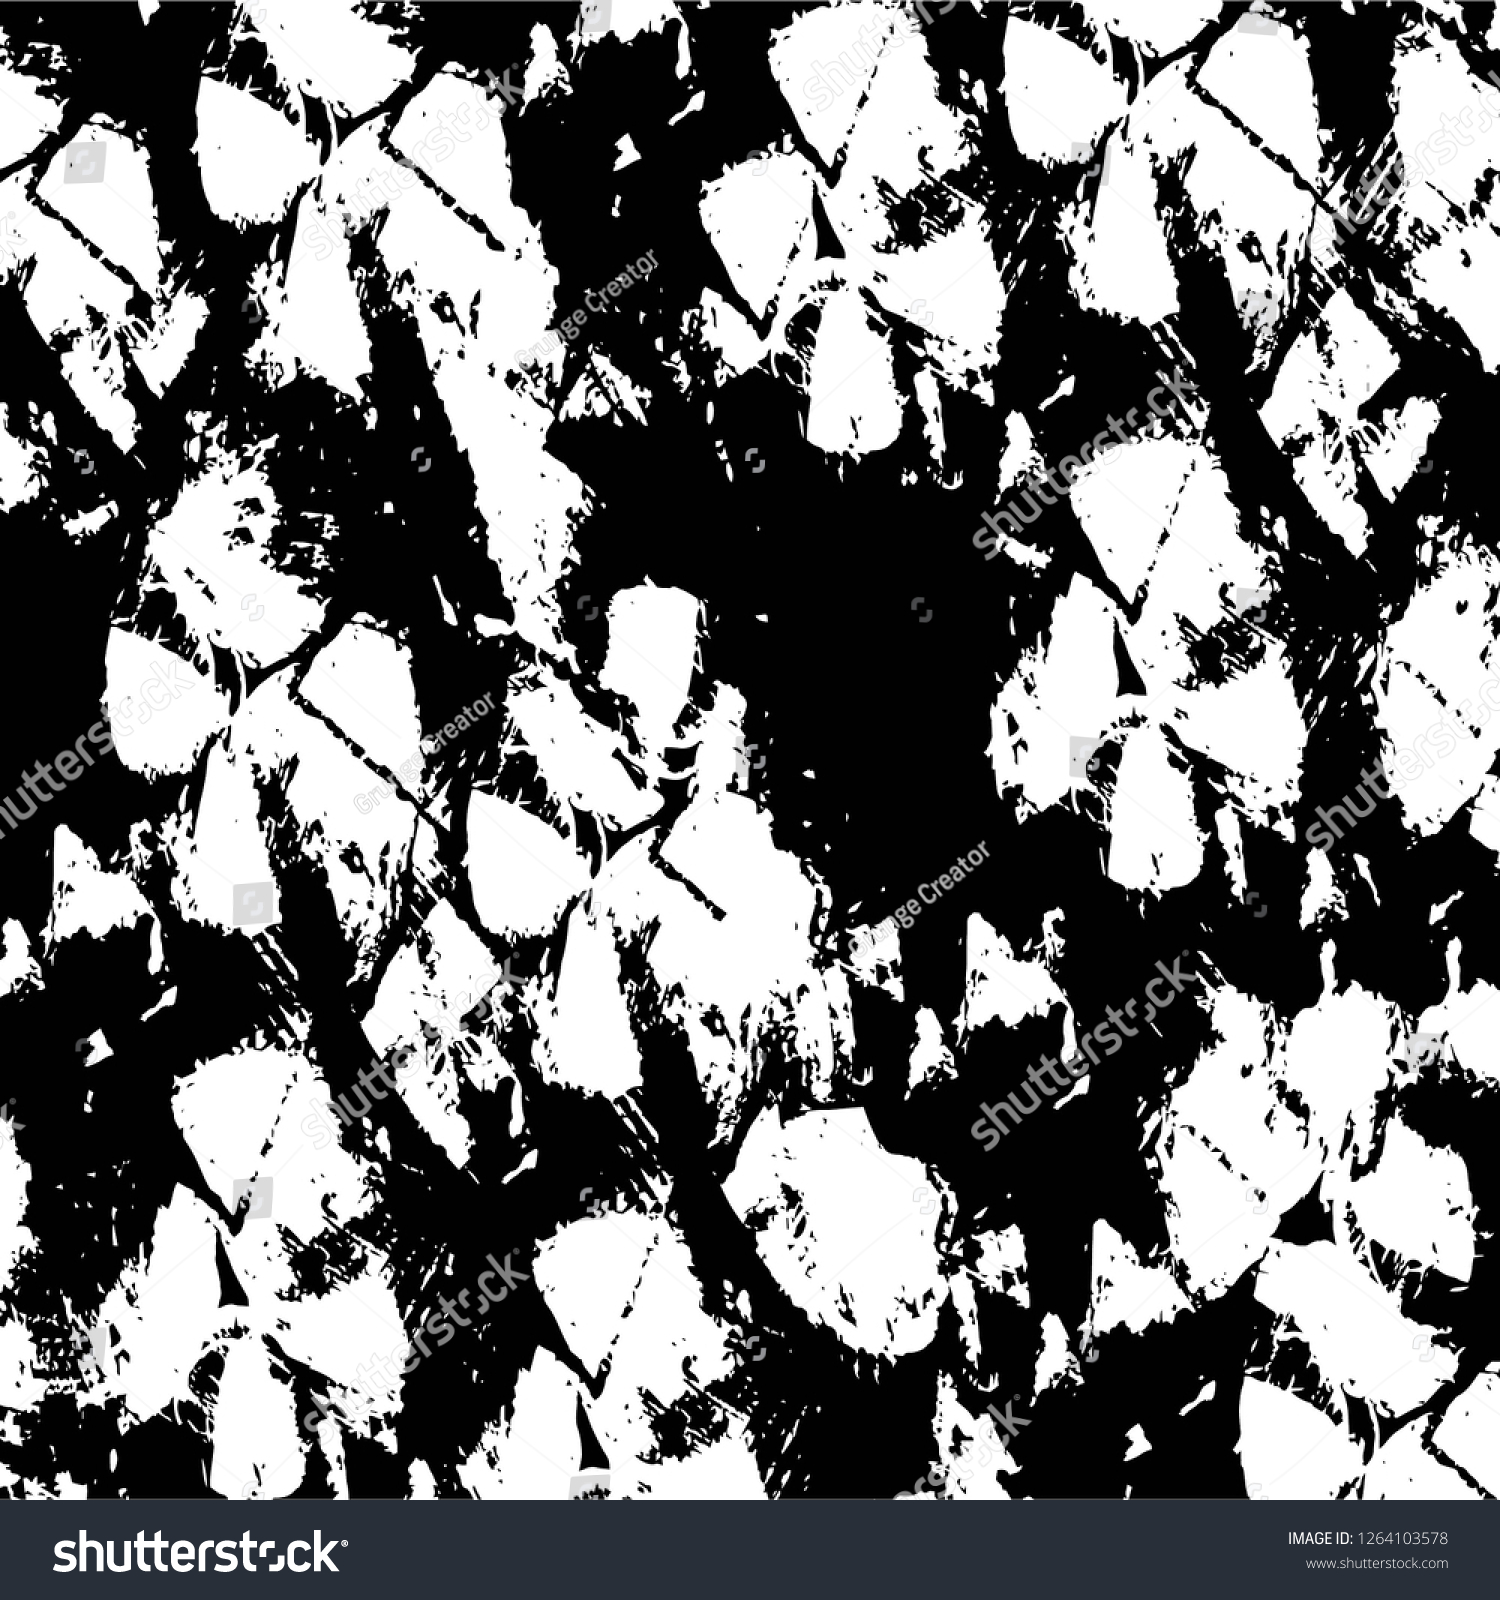 Vector grunge overlay texture black and white background abstract monochrome image includes a faded